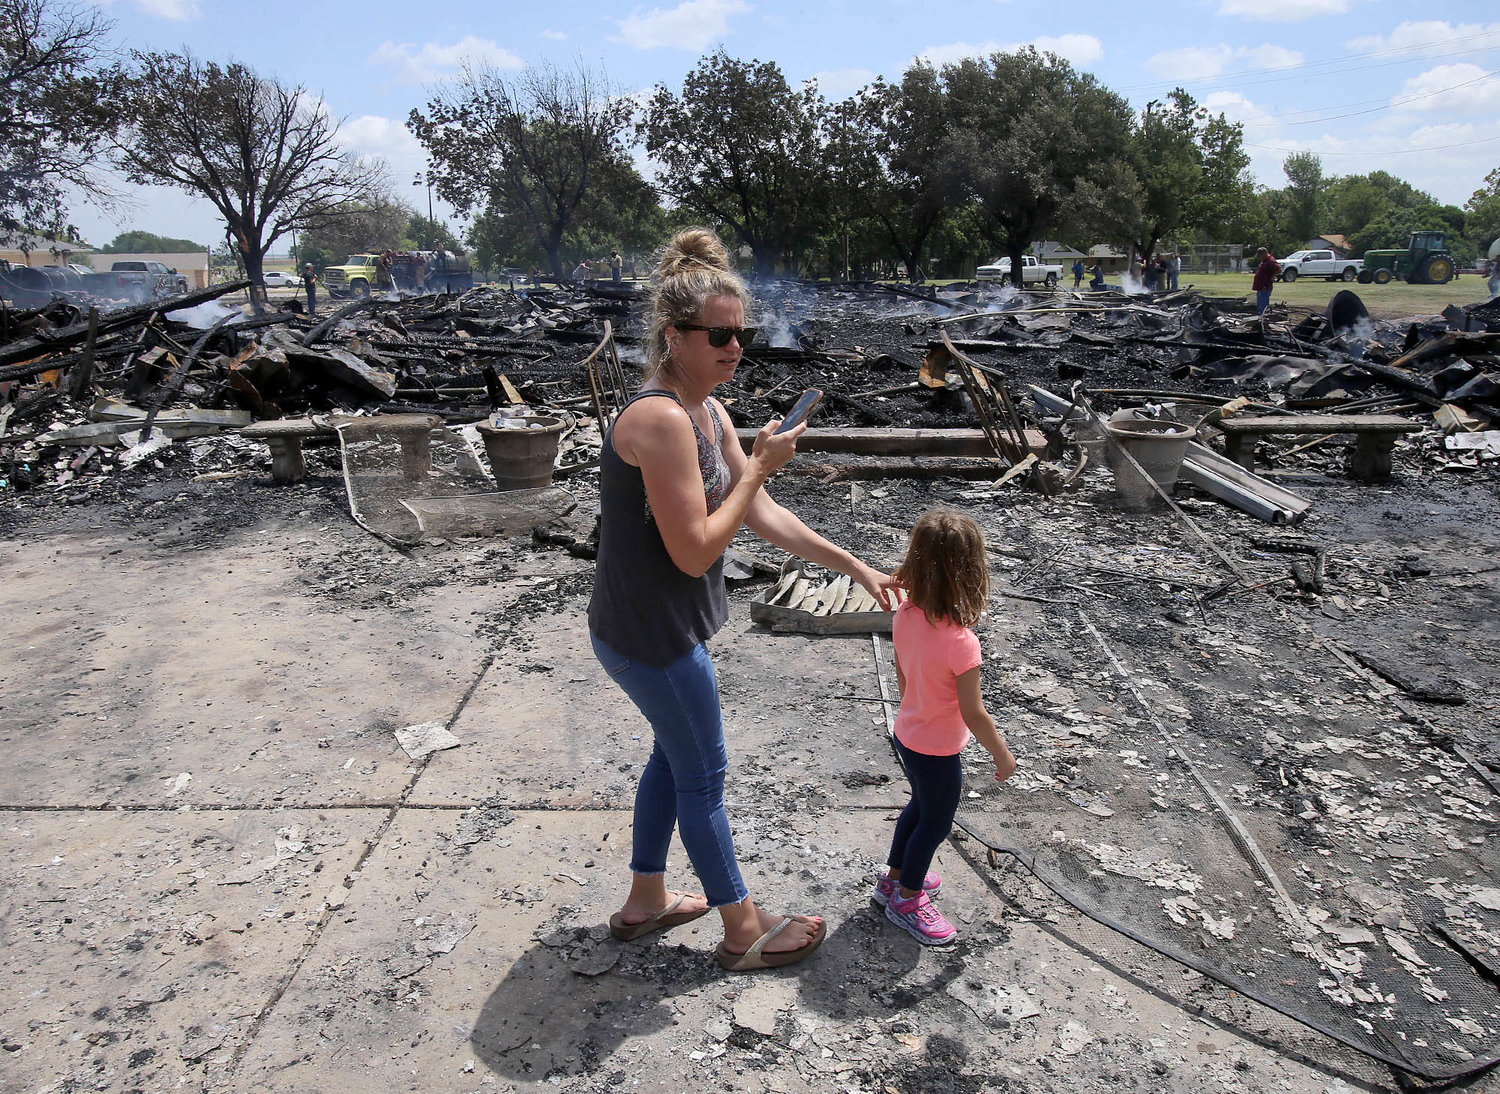 Catherine Halfmann and her 4-year-old daughter, Emma, stand near debris July 29, 2019, after fire destroyed the Church of the Visitation in Westphalia, Texas. Since 1883 the parish has served the Catholic community of southwestern Falls County, many of whom are descendents of immigrants from the northwest German region of Westphalia.